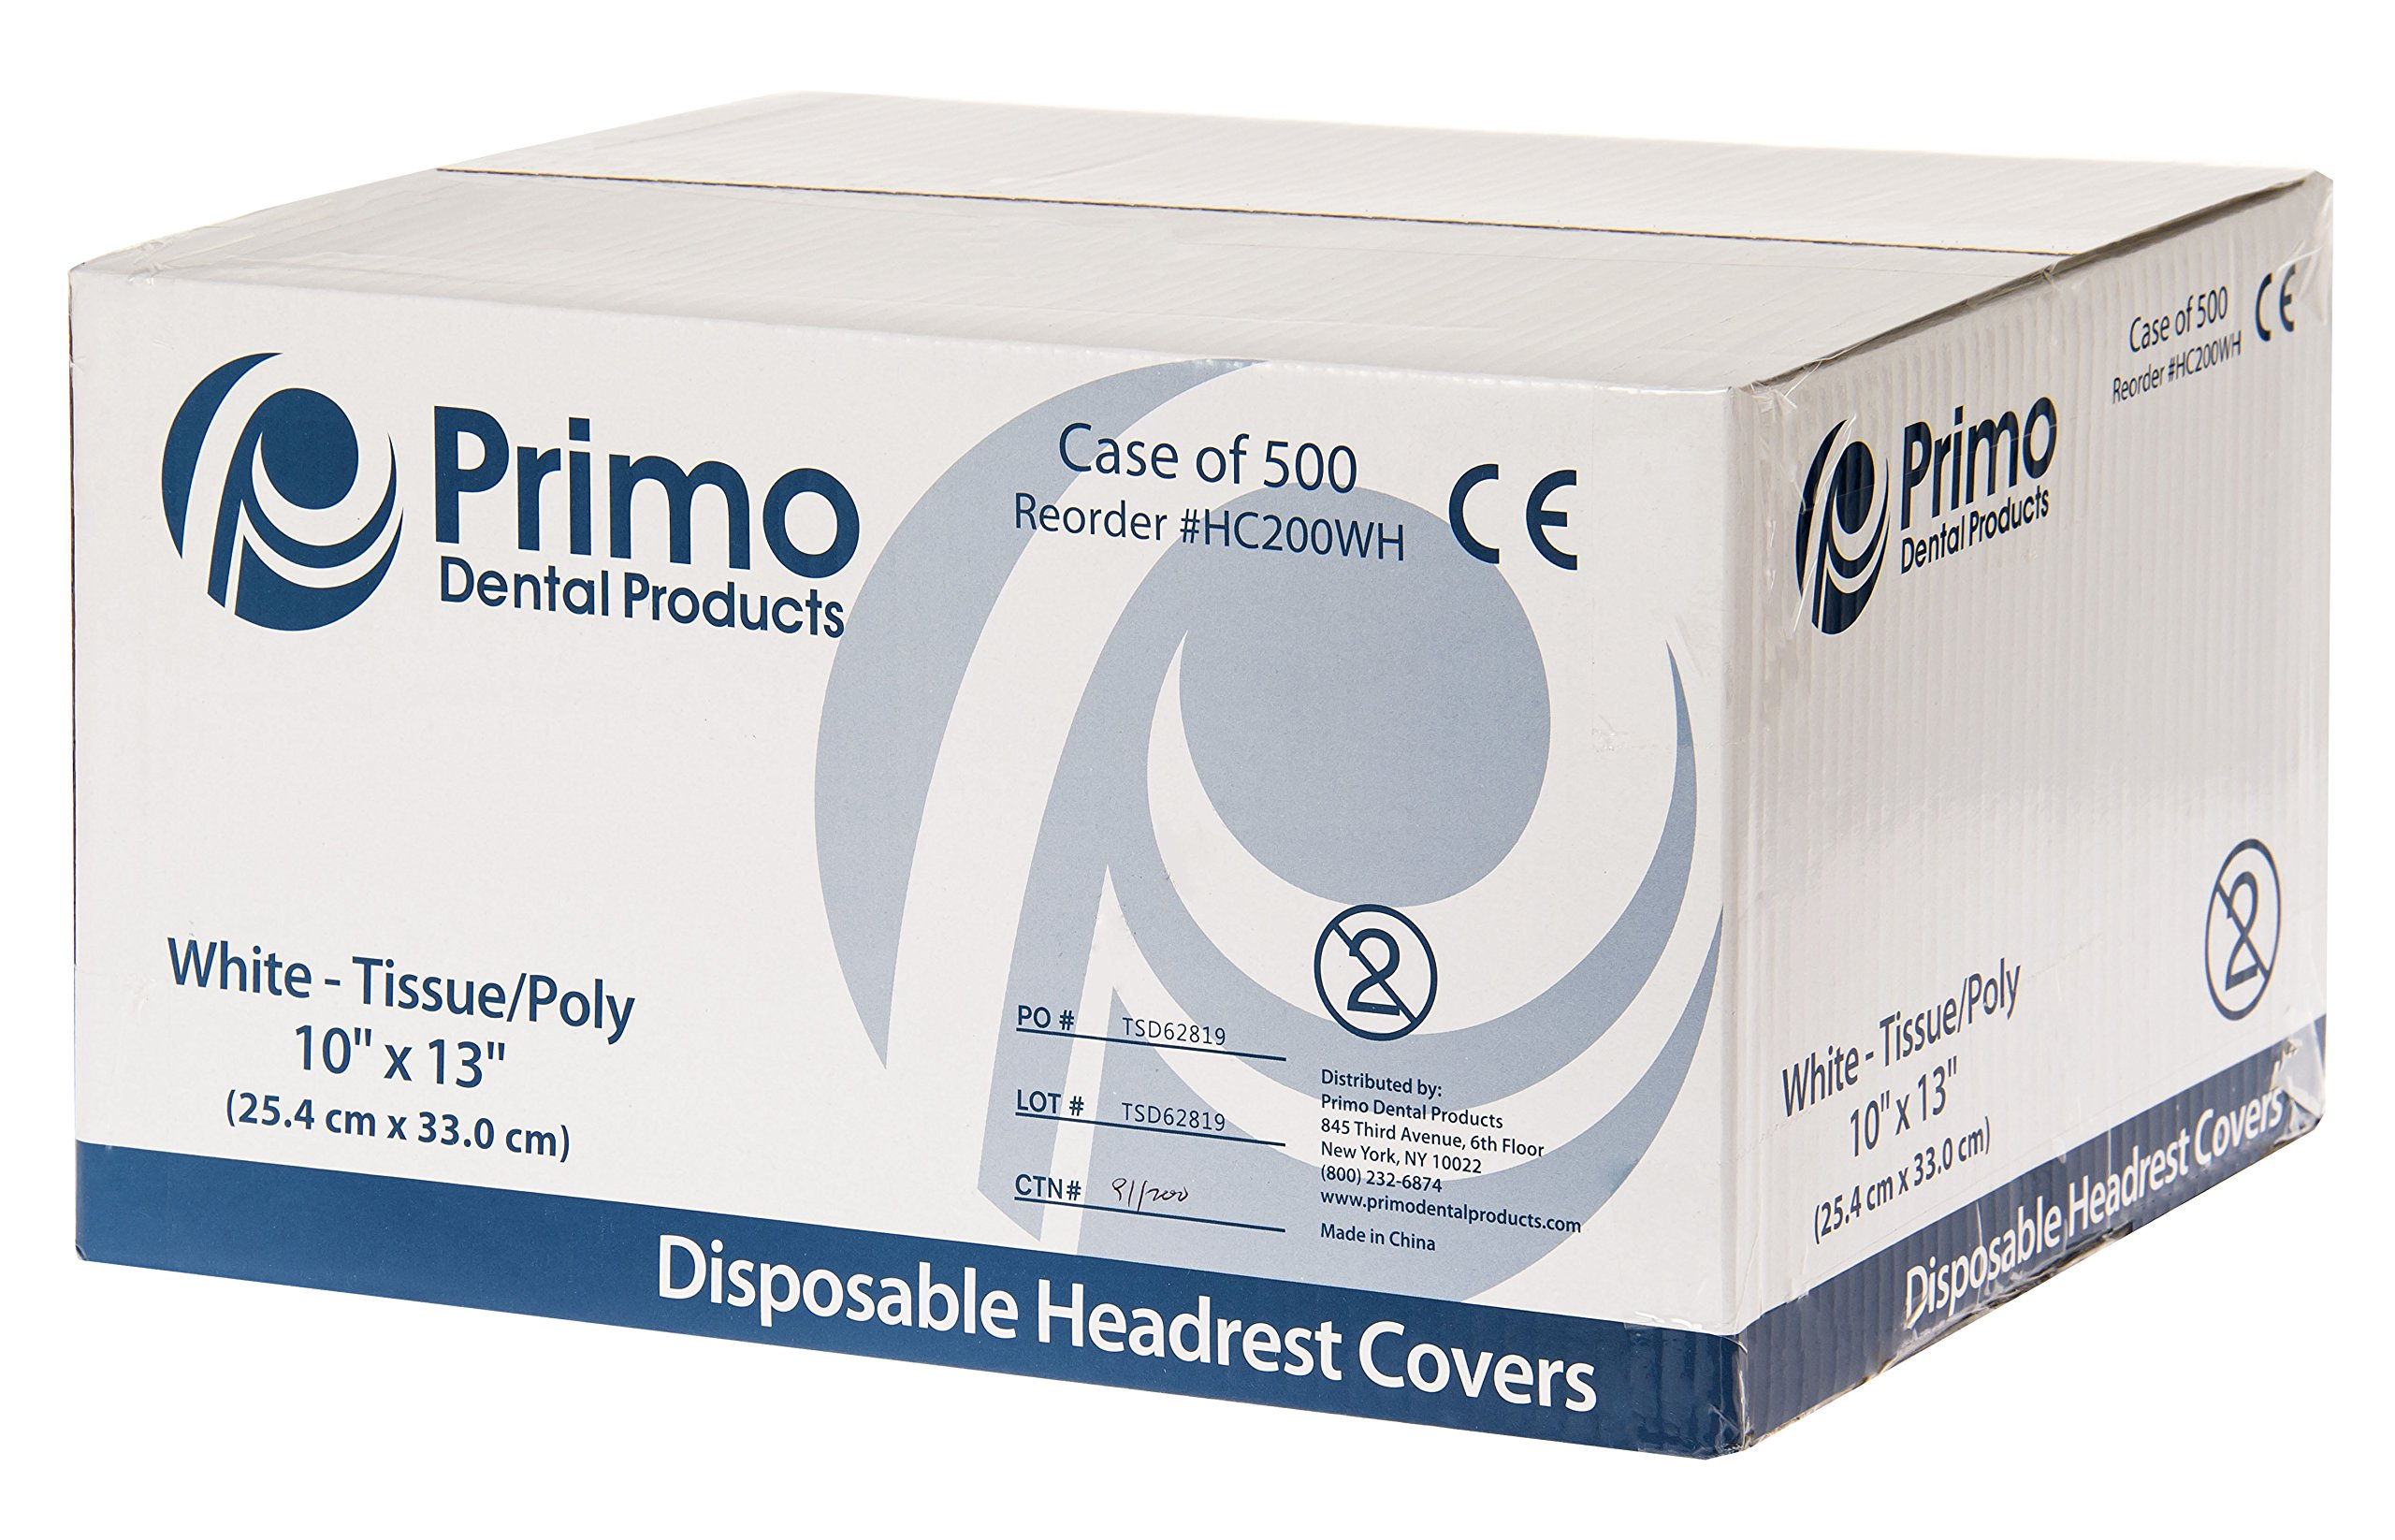 Primo Dental Products HC200WH Headrest Covers Paper Tissue Poly, 10'' x 13'', White (Pack of 500)